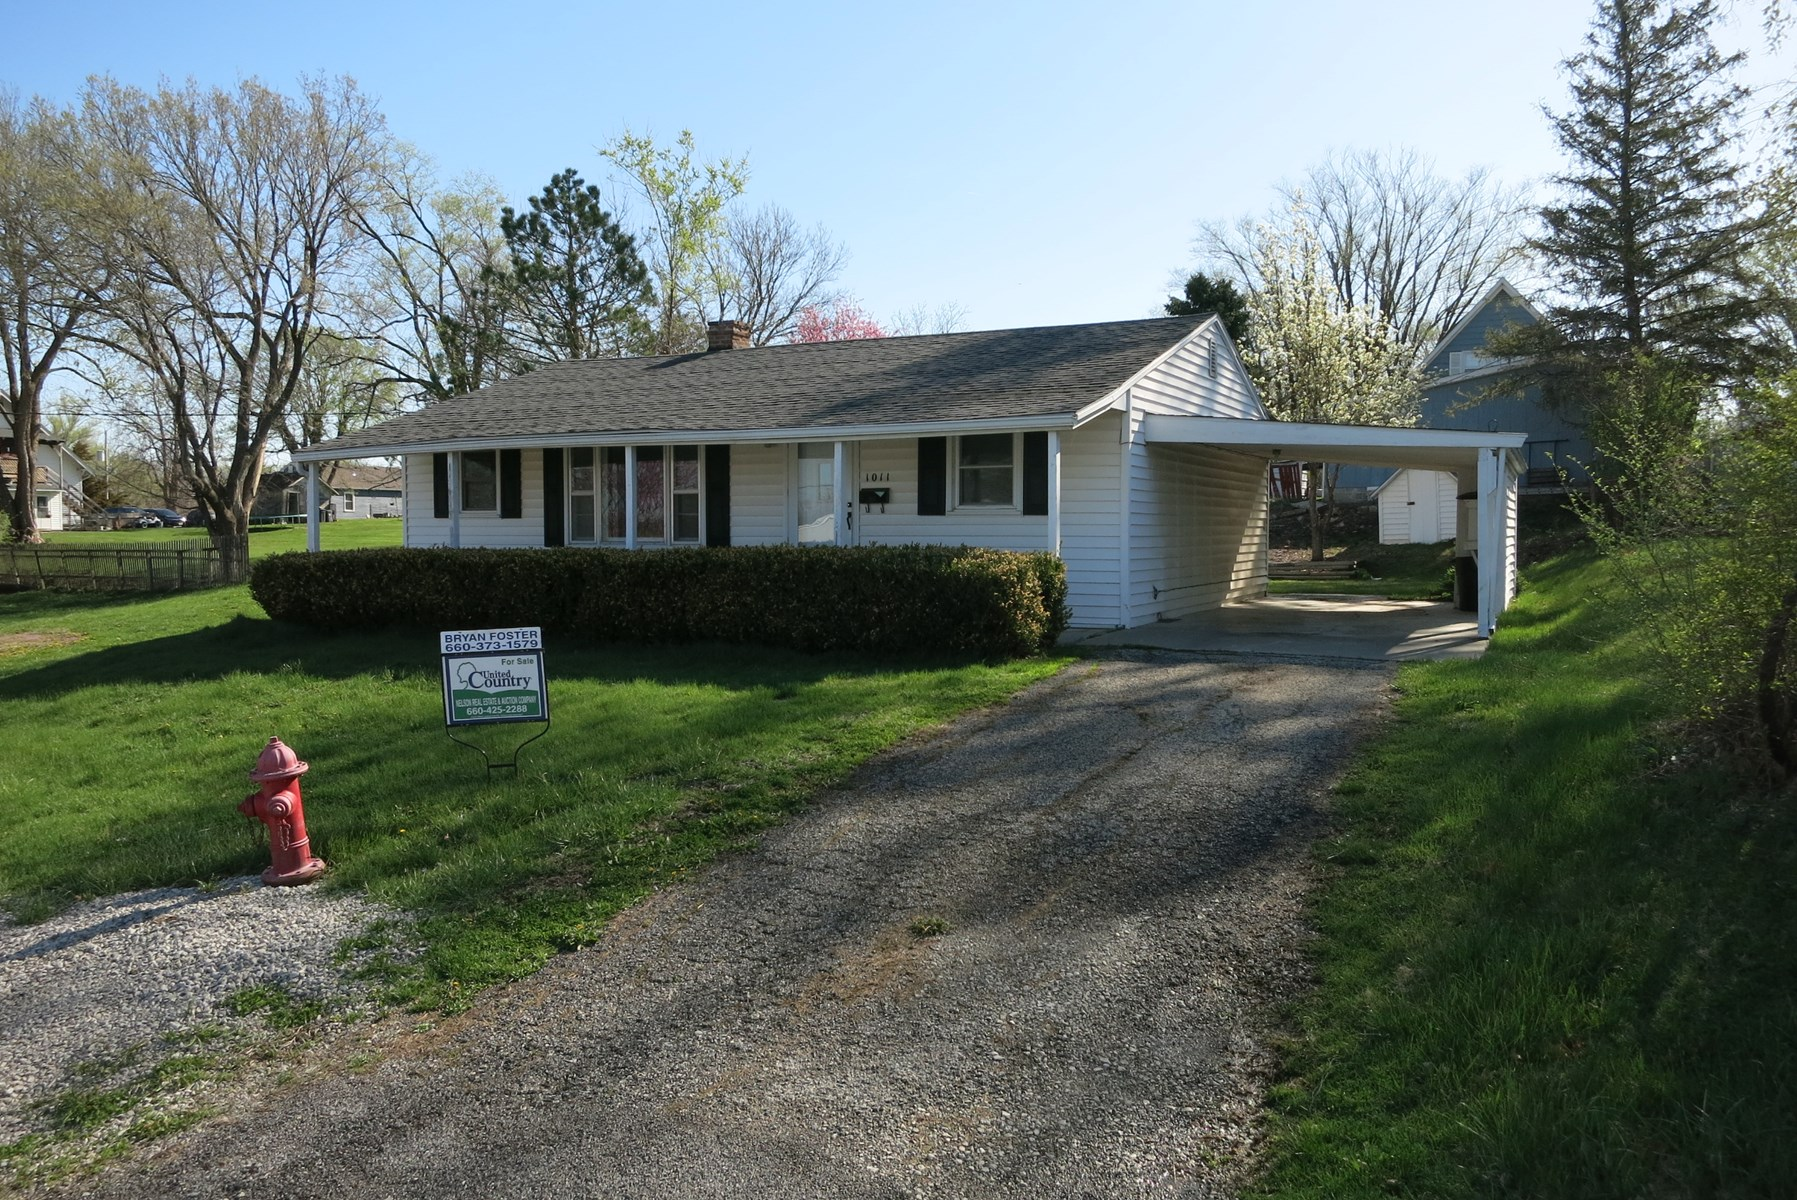 For Sale 3 BR Ranch Home in Bethany